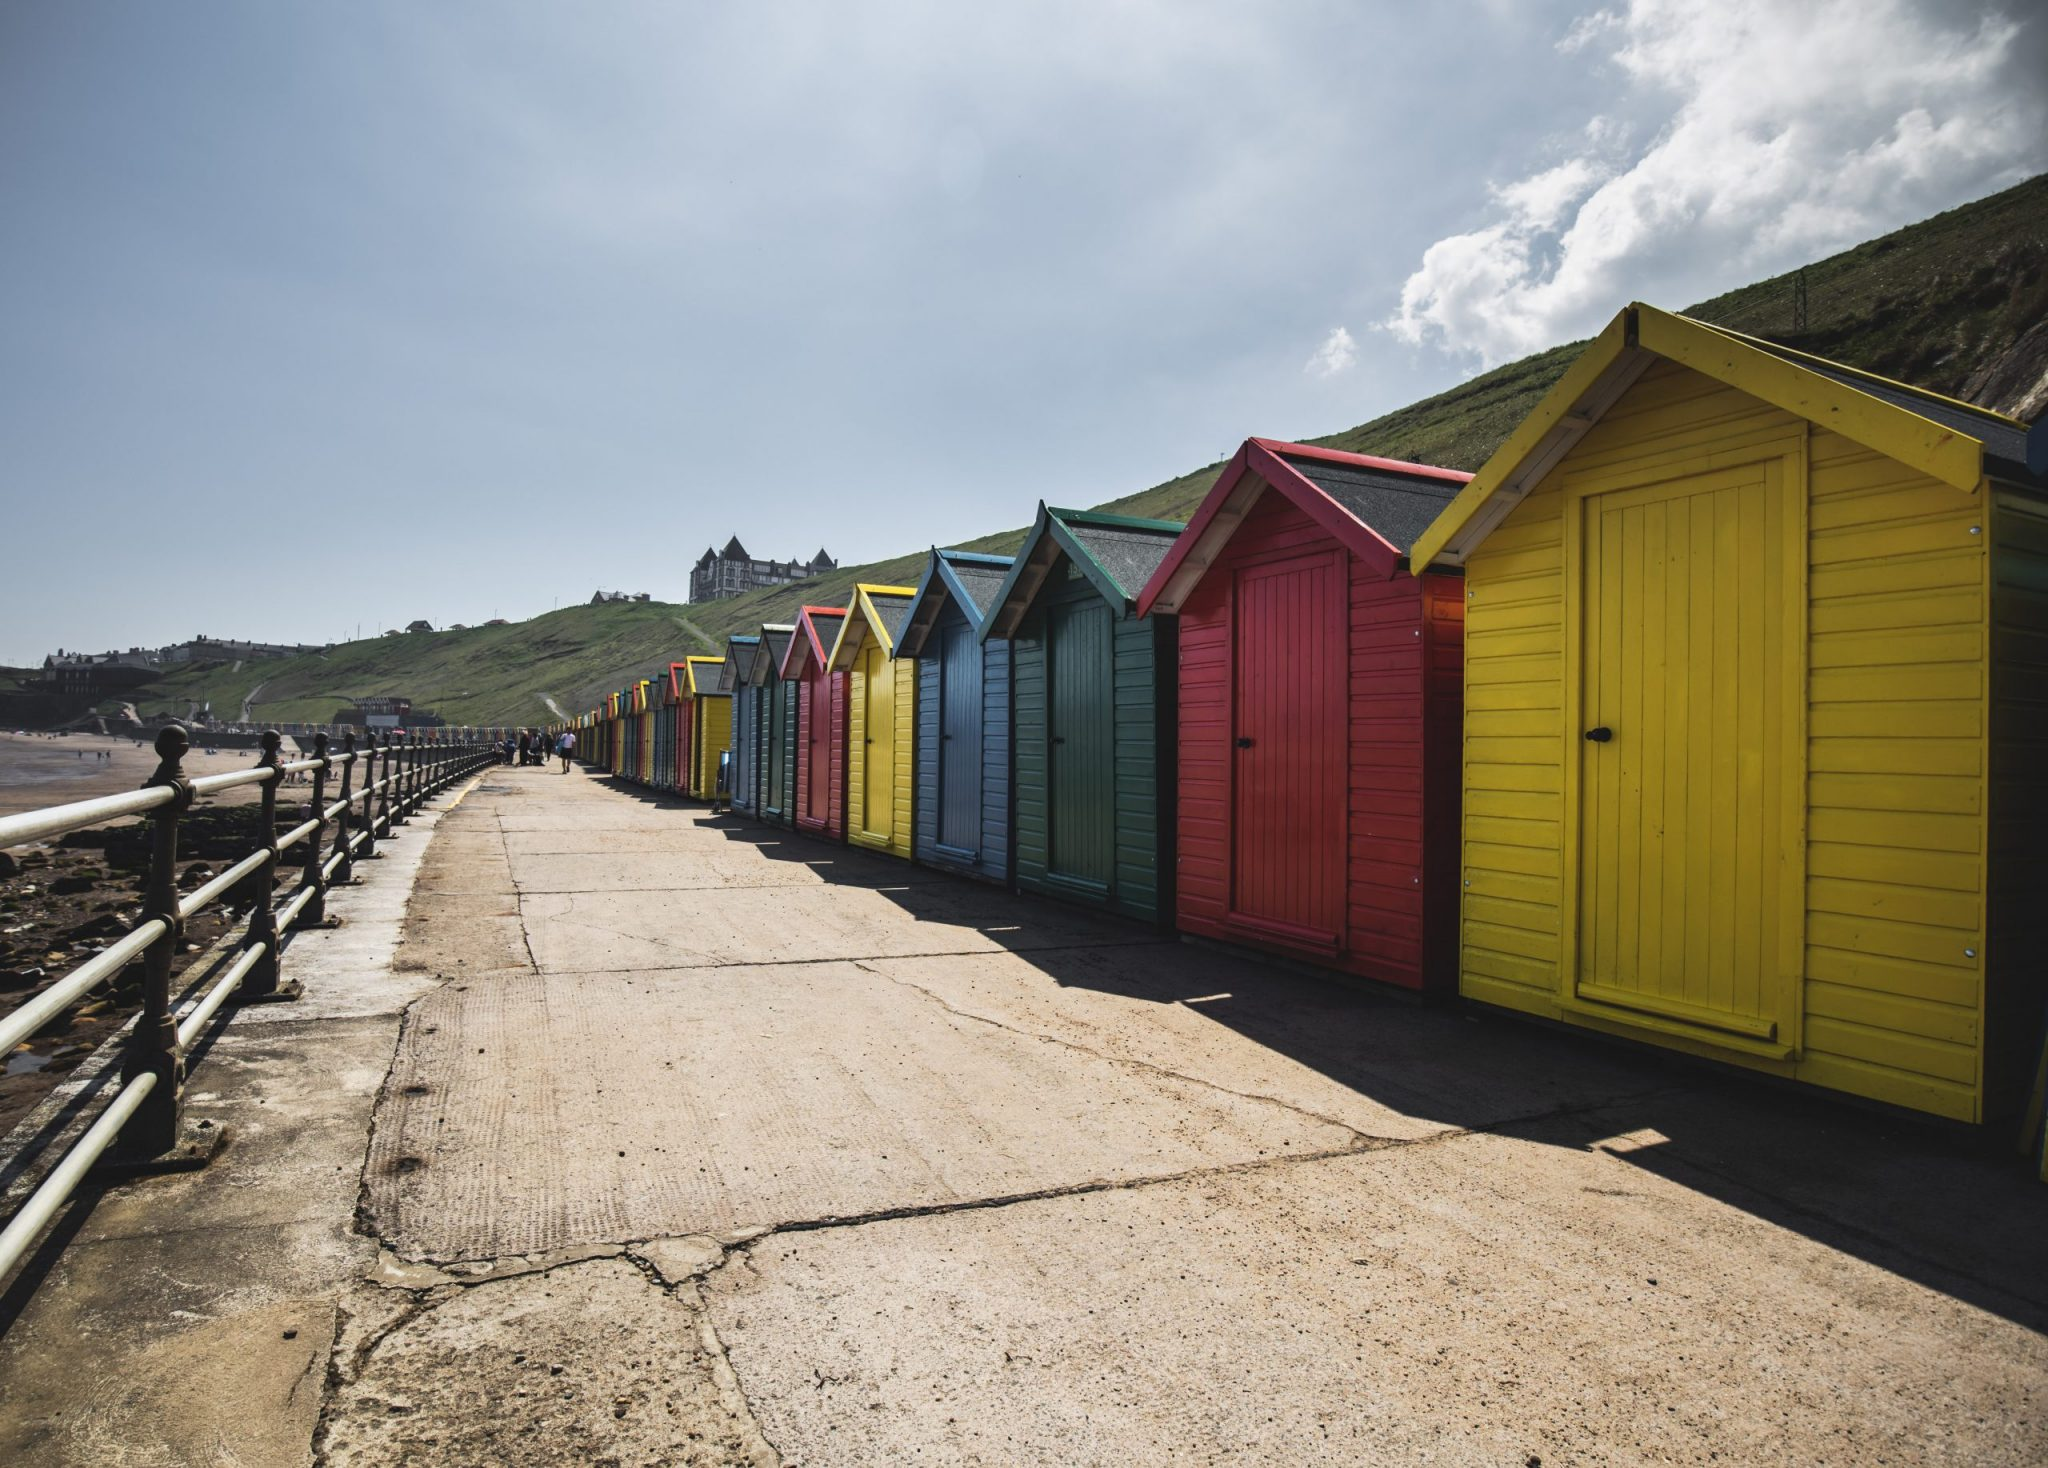 Whitby beach huts in the sunshine in Yorkshire.